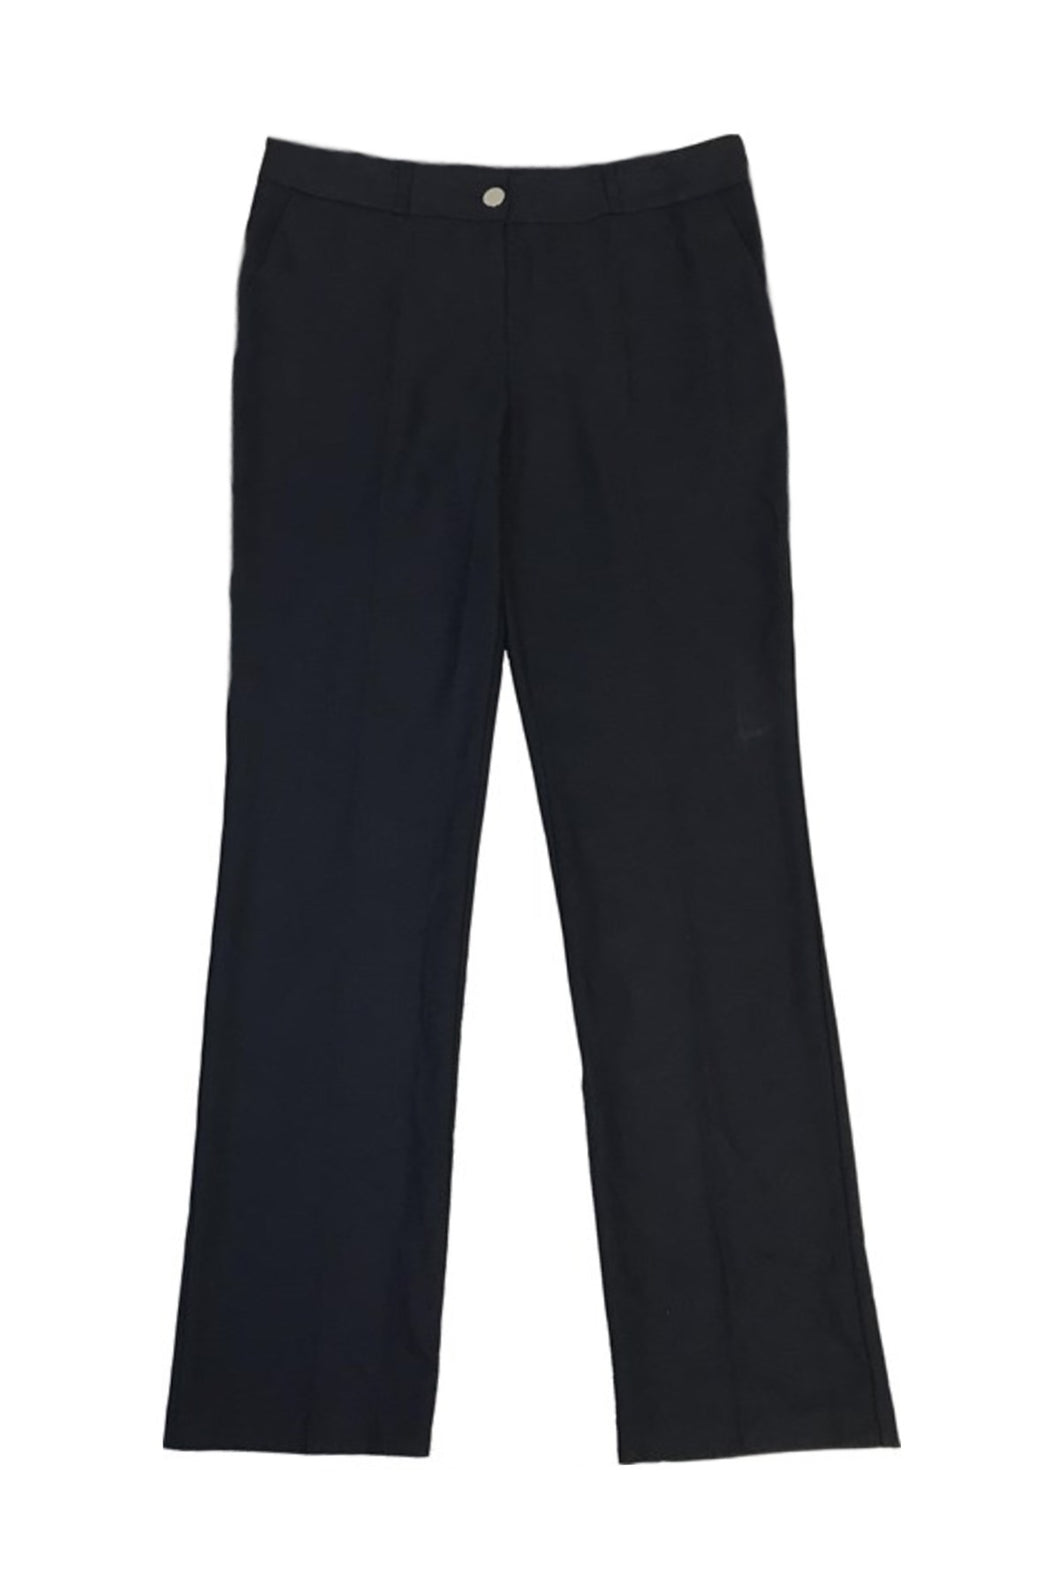 Women's Classic Cut Navy Blue Pants